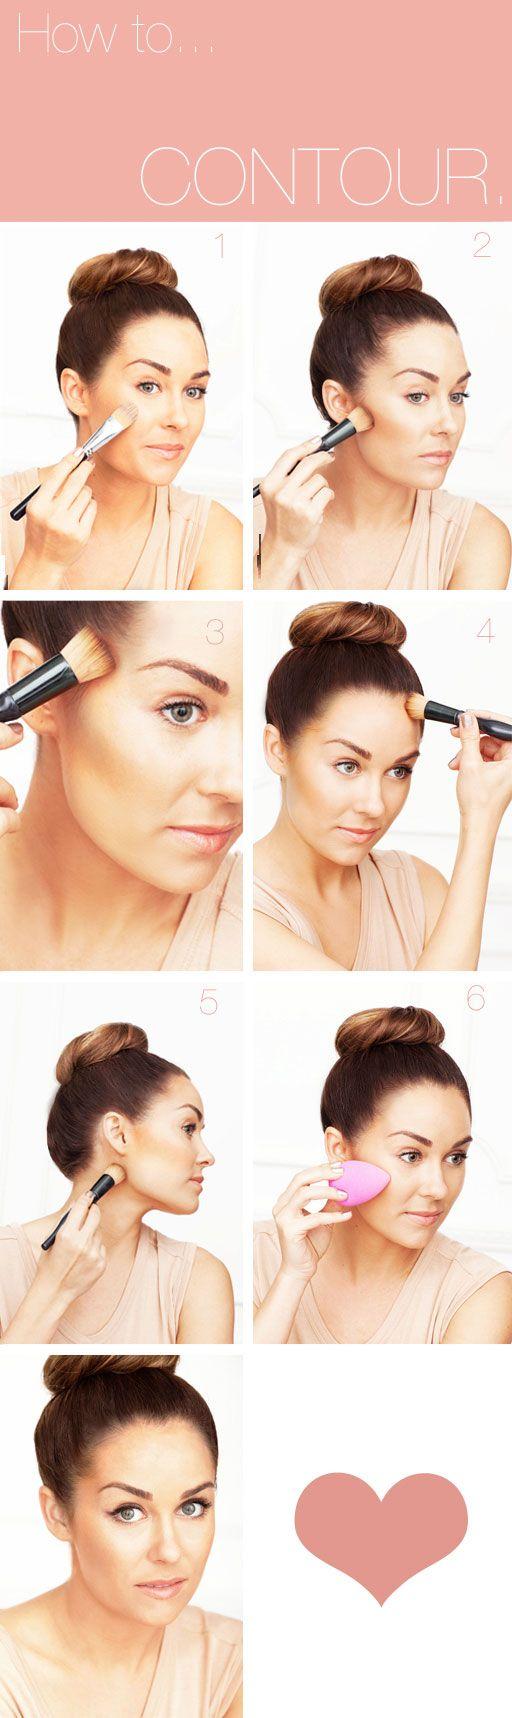 : Applying Foundation, Makeup Tutorials, Makeup Contours, Contours Tutorials, Laurenconrad, Contours Makeup, Foundation Brushes, Lauren Conrad, Faces Contours